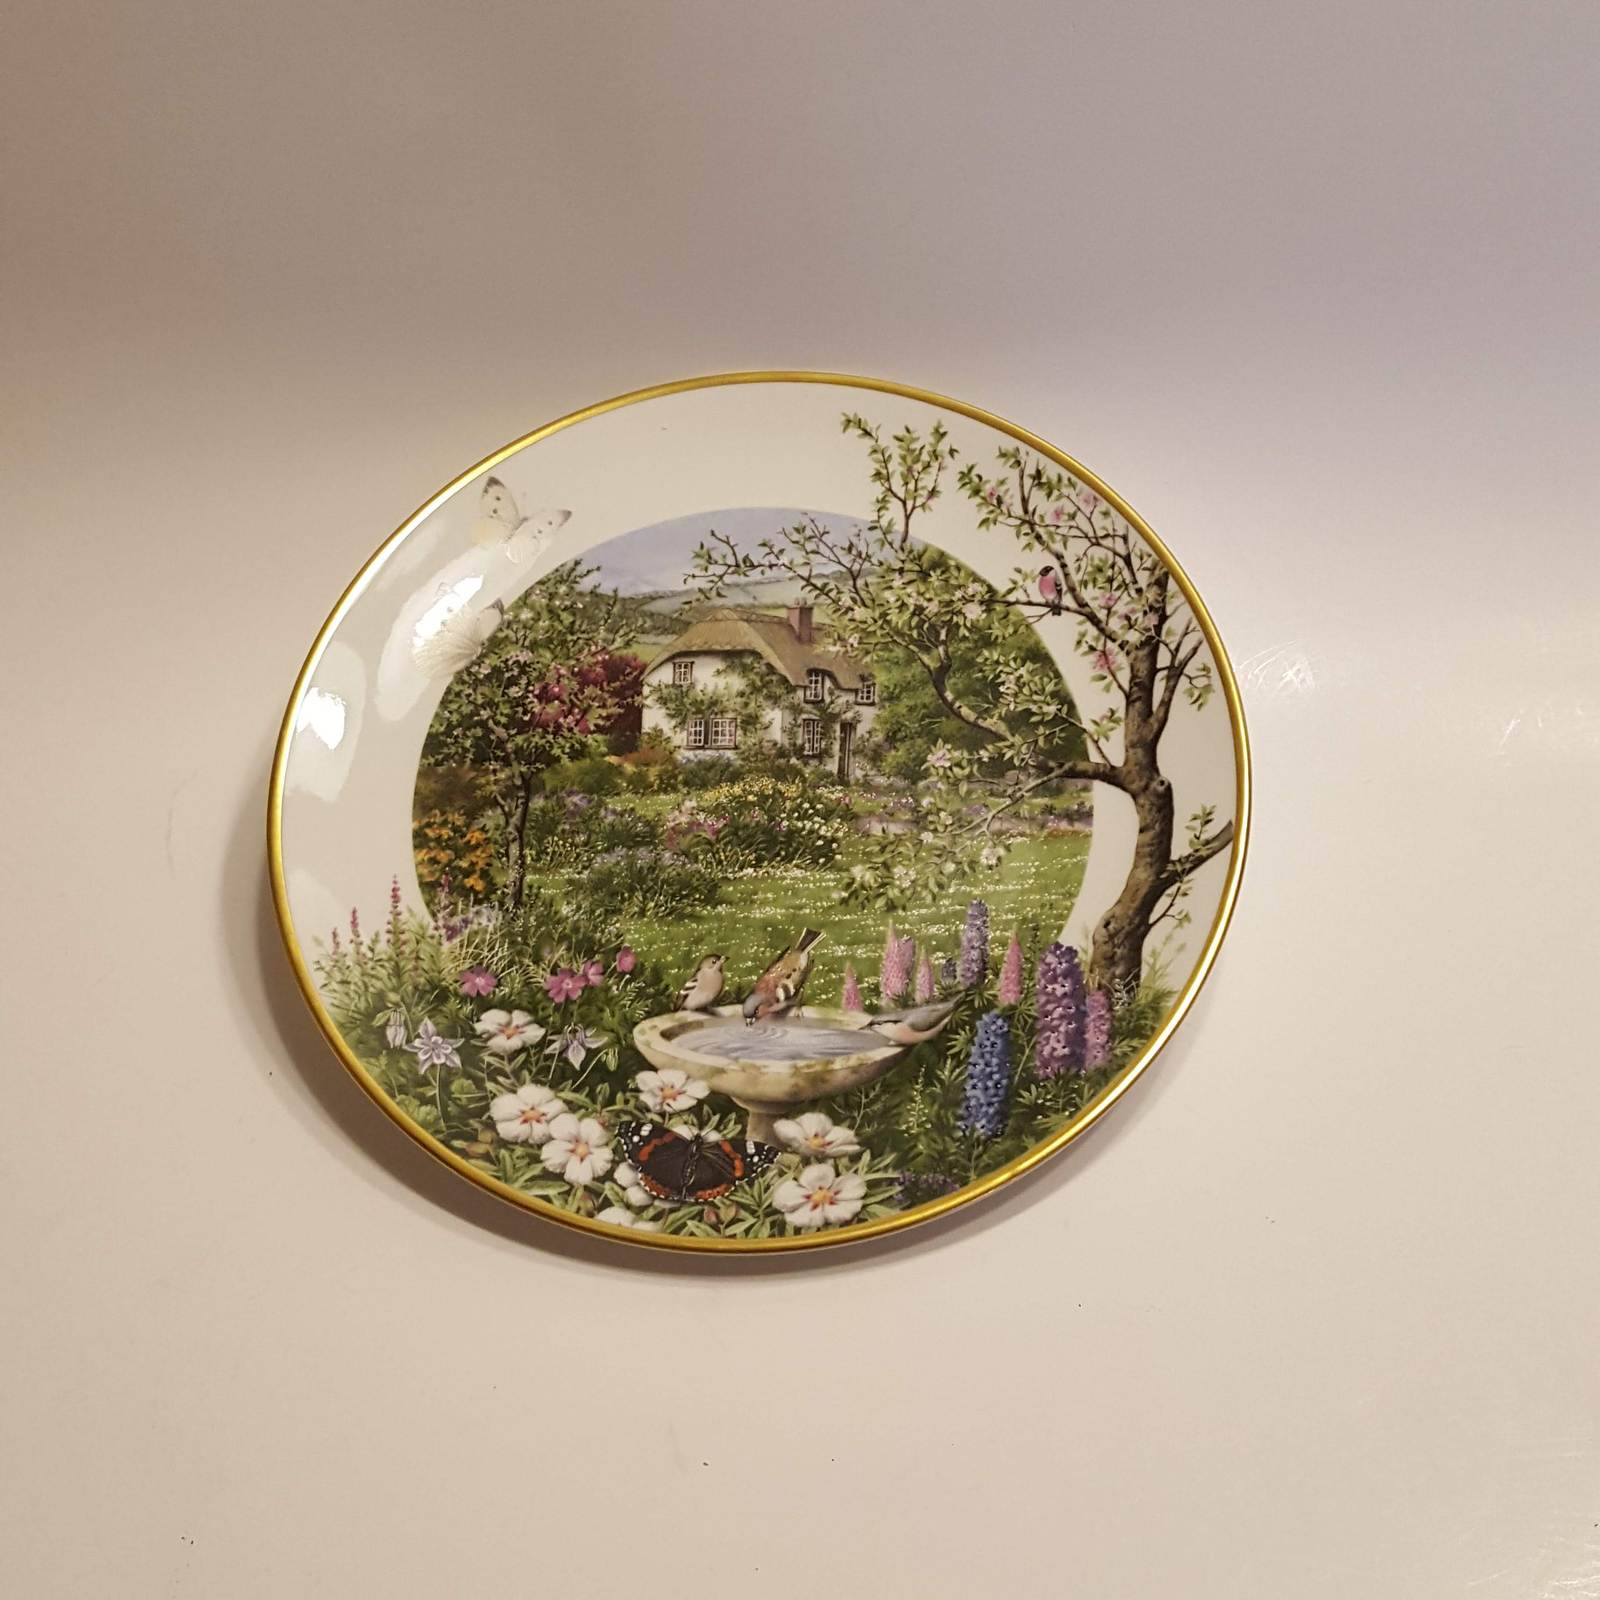 Primary image for Franklin Porcelain Plate June in a country garden @1979 by Peter Banett.Lim.ed.